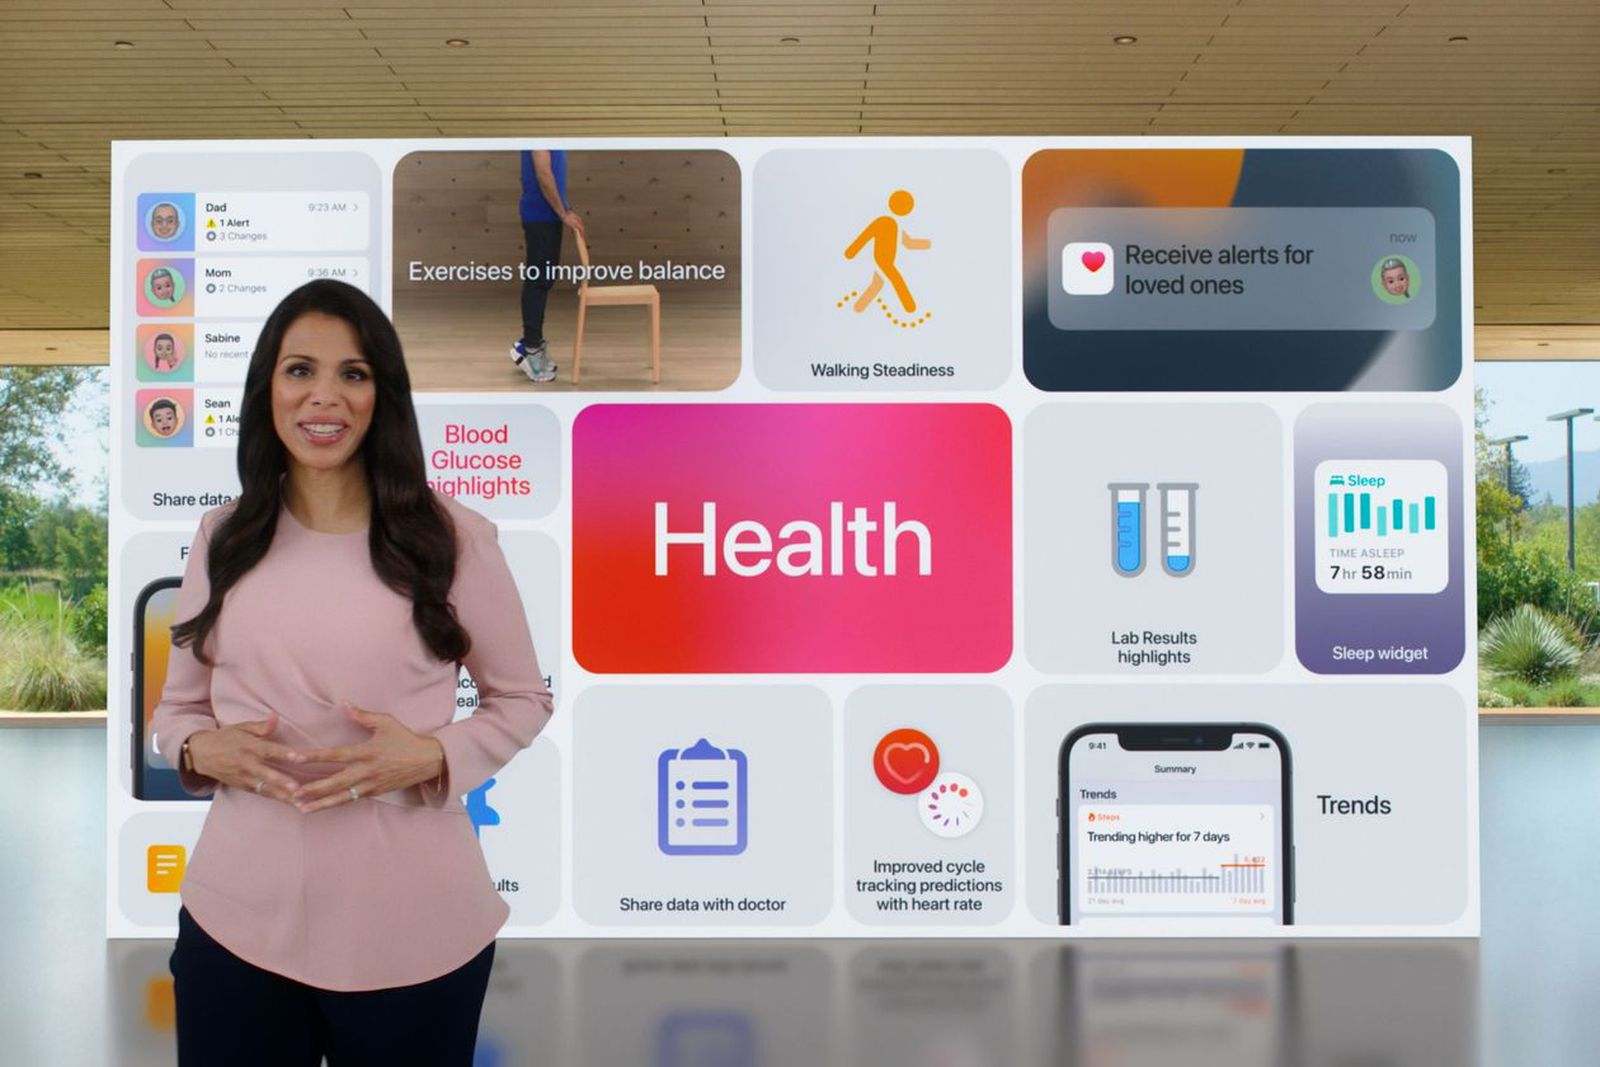 WSJ: Apple Piloted Running Its Own Subscription Based Primary Healthcare Service With 'Apple Doctors'